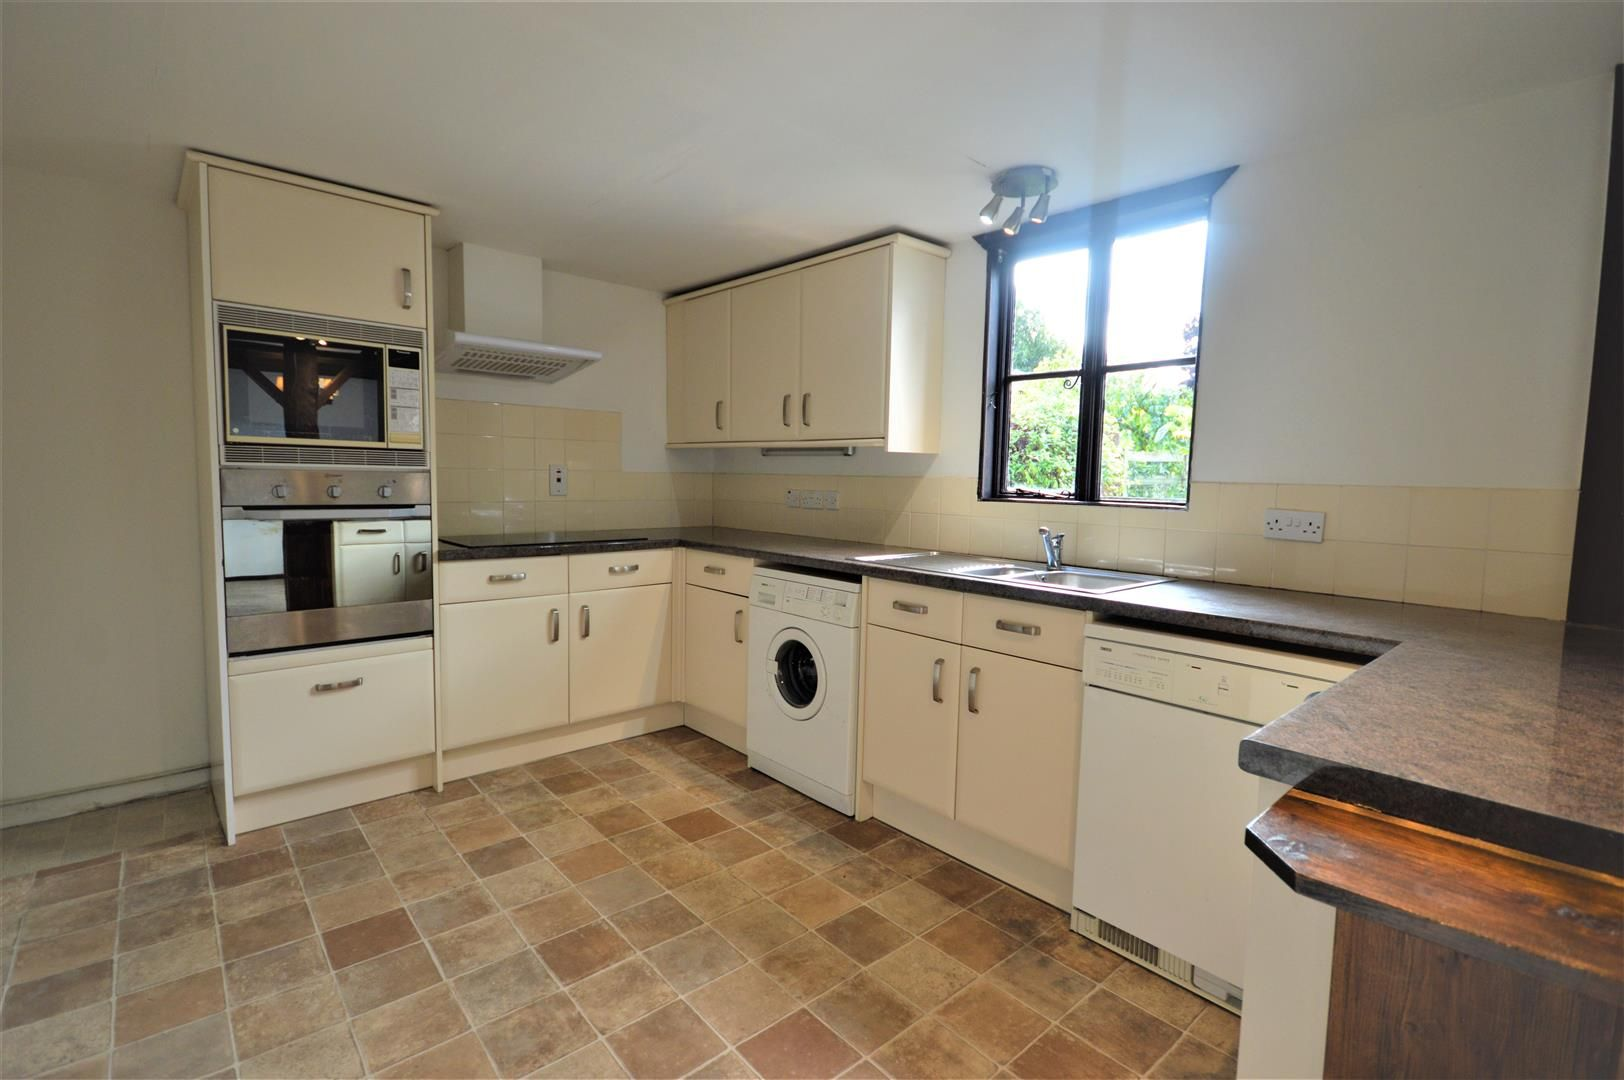 3 bed end of terrace for sale in Luston 5